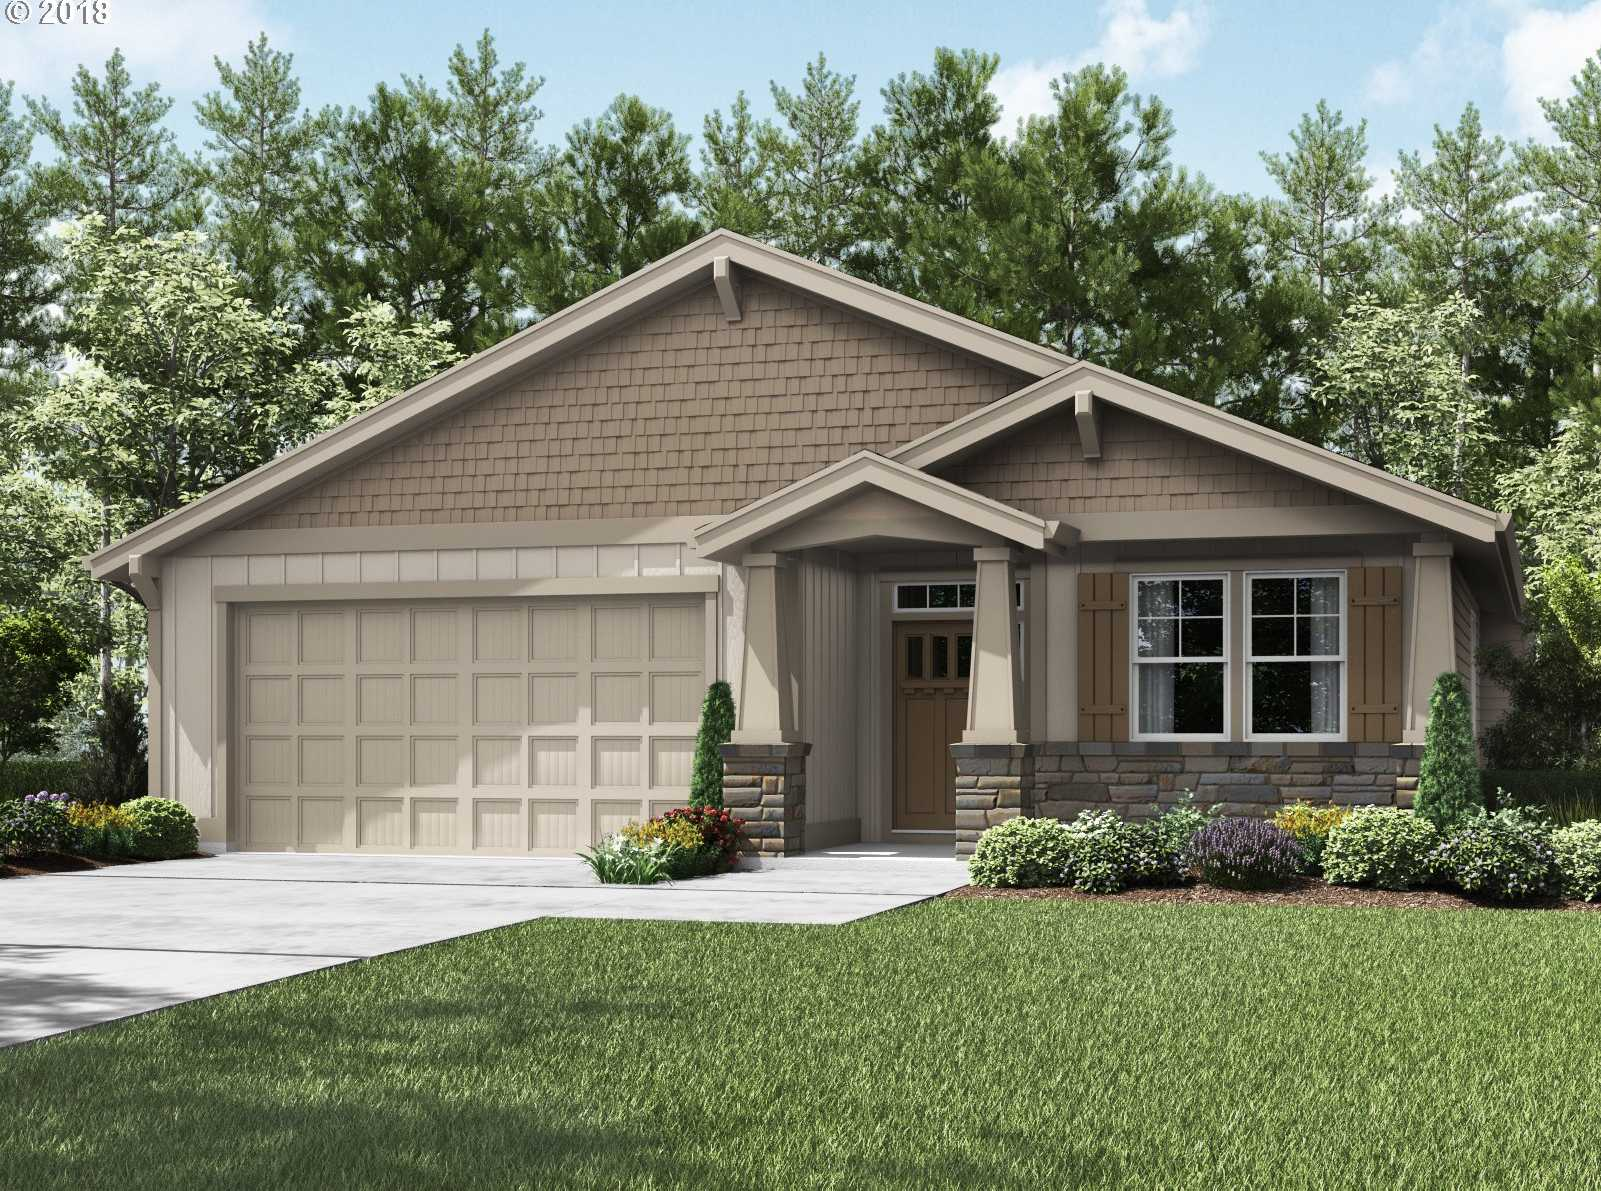 $475,900 - 3Br/2Ba -  for Sale in Tualatin